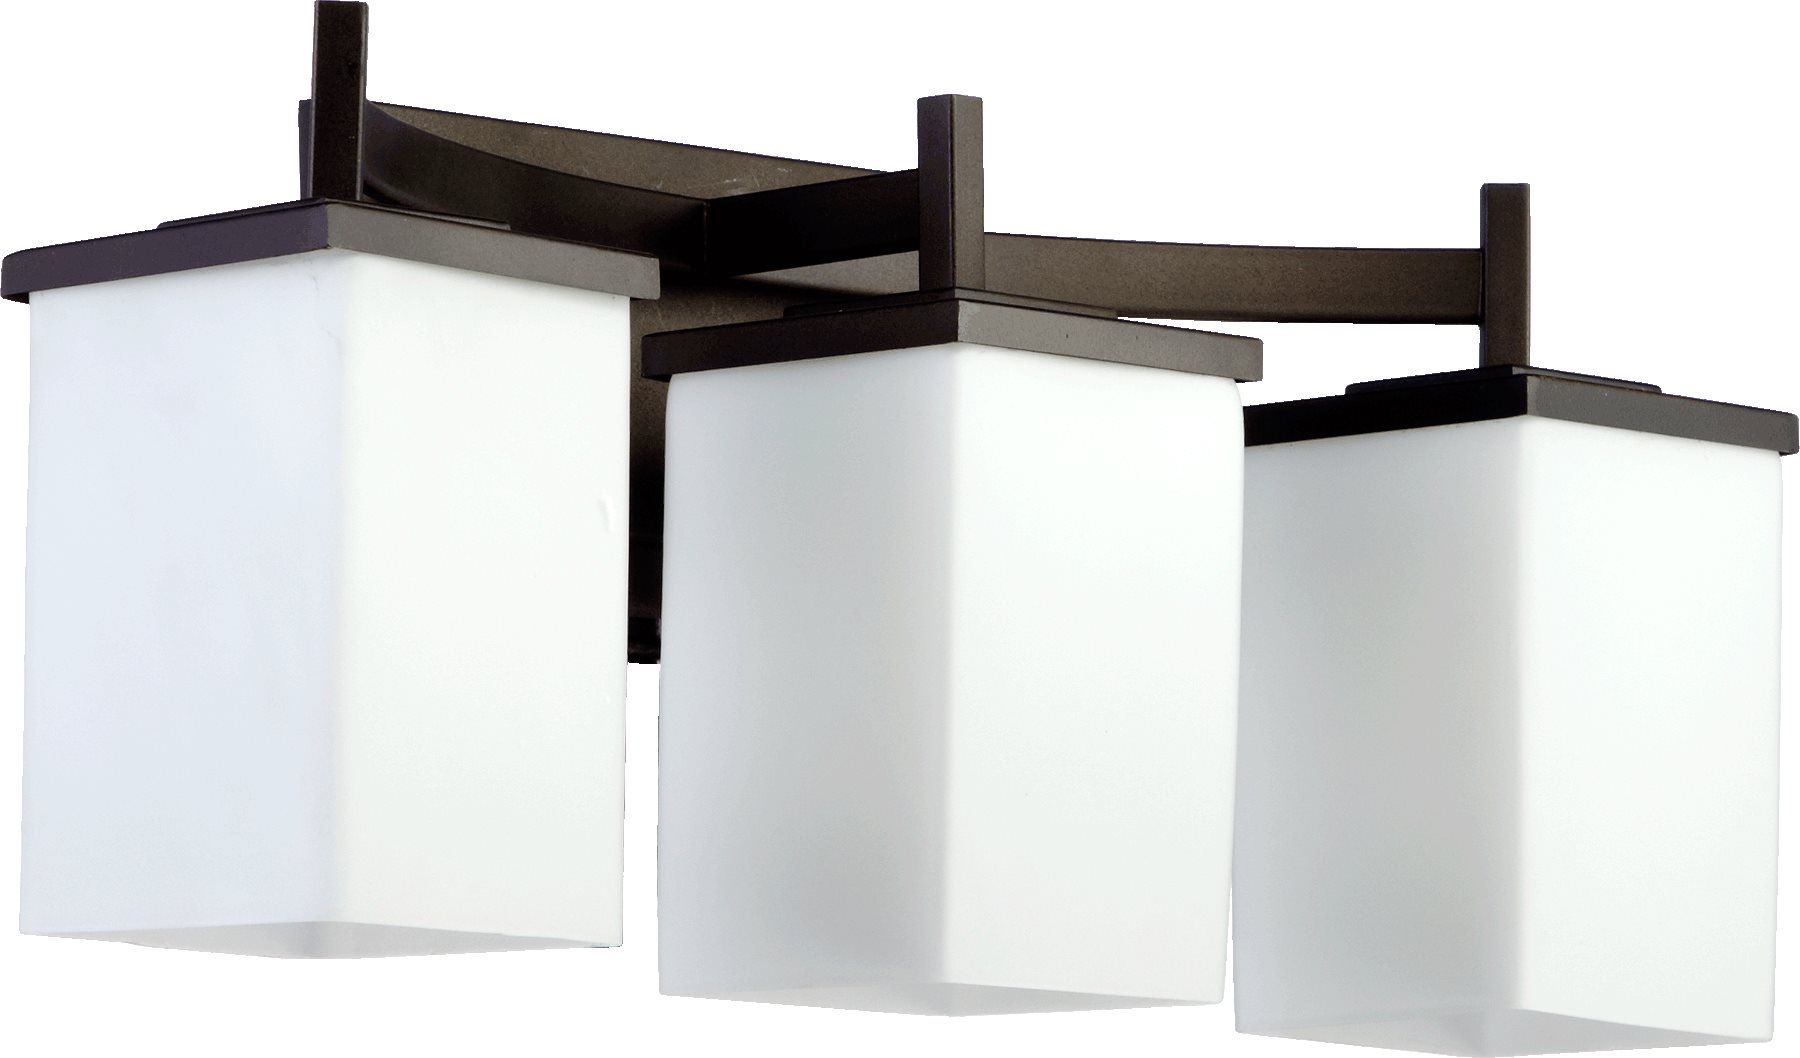 Delta Bathroom Vanity Lights : Quorum Lighting 5084-3-86 Delta Modern / Contemporary Bathroom / Vanity Light QR-5084-3-86